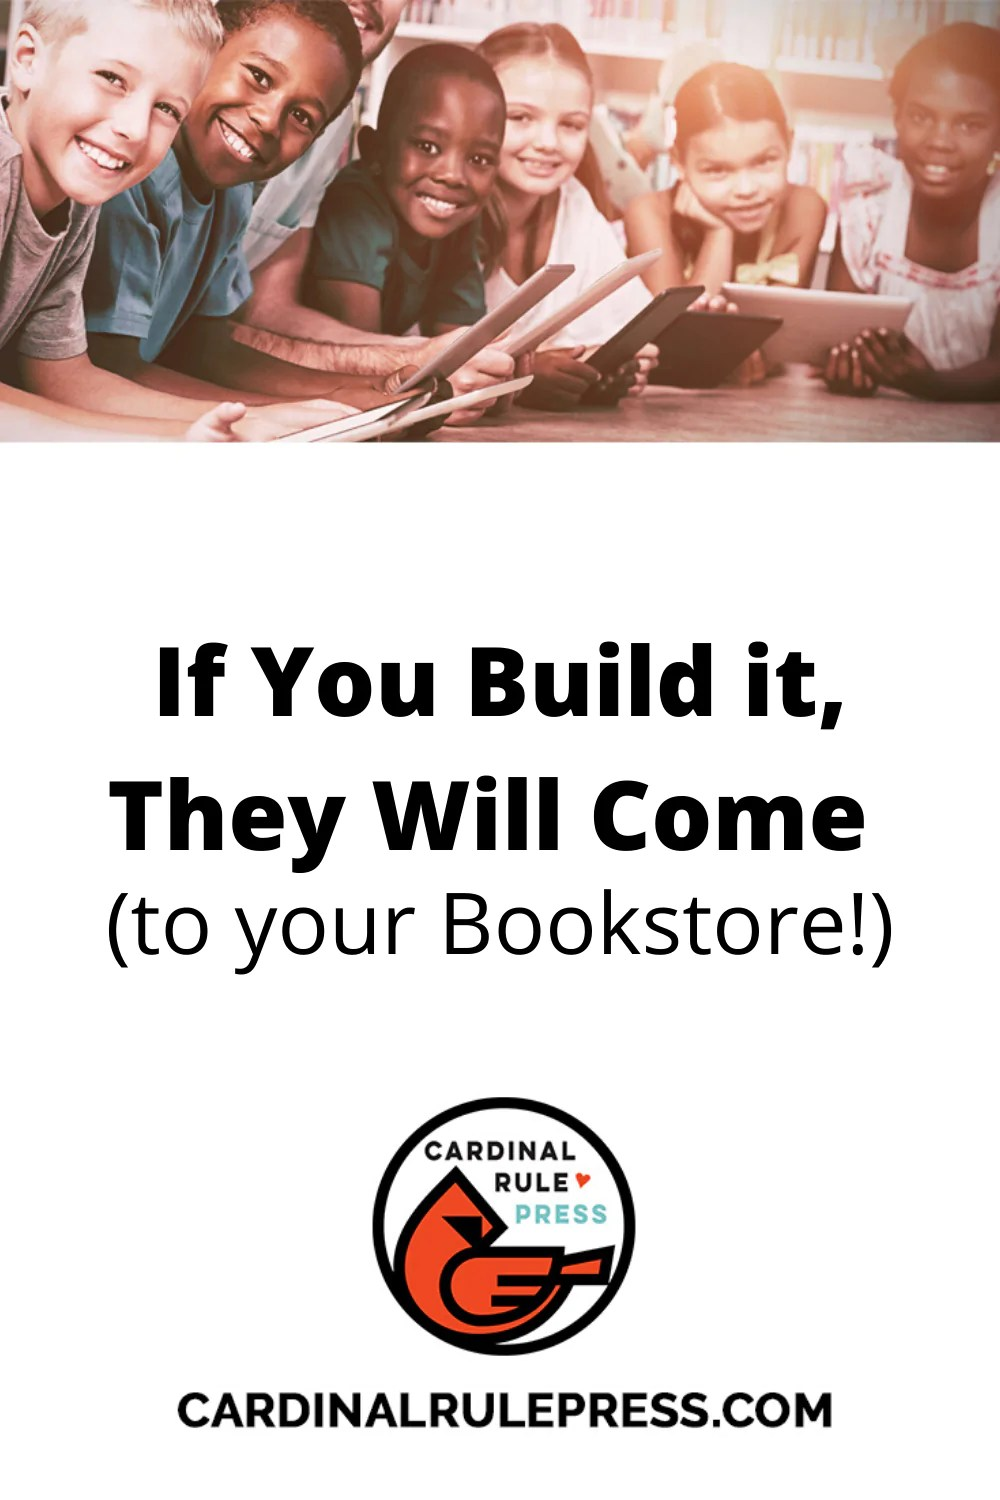 If You Build it, They Will Come (to your Bookstore!)